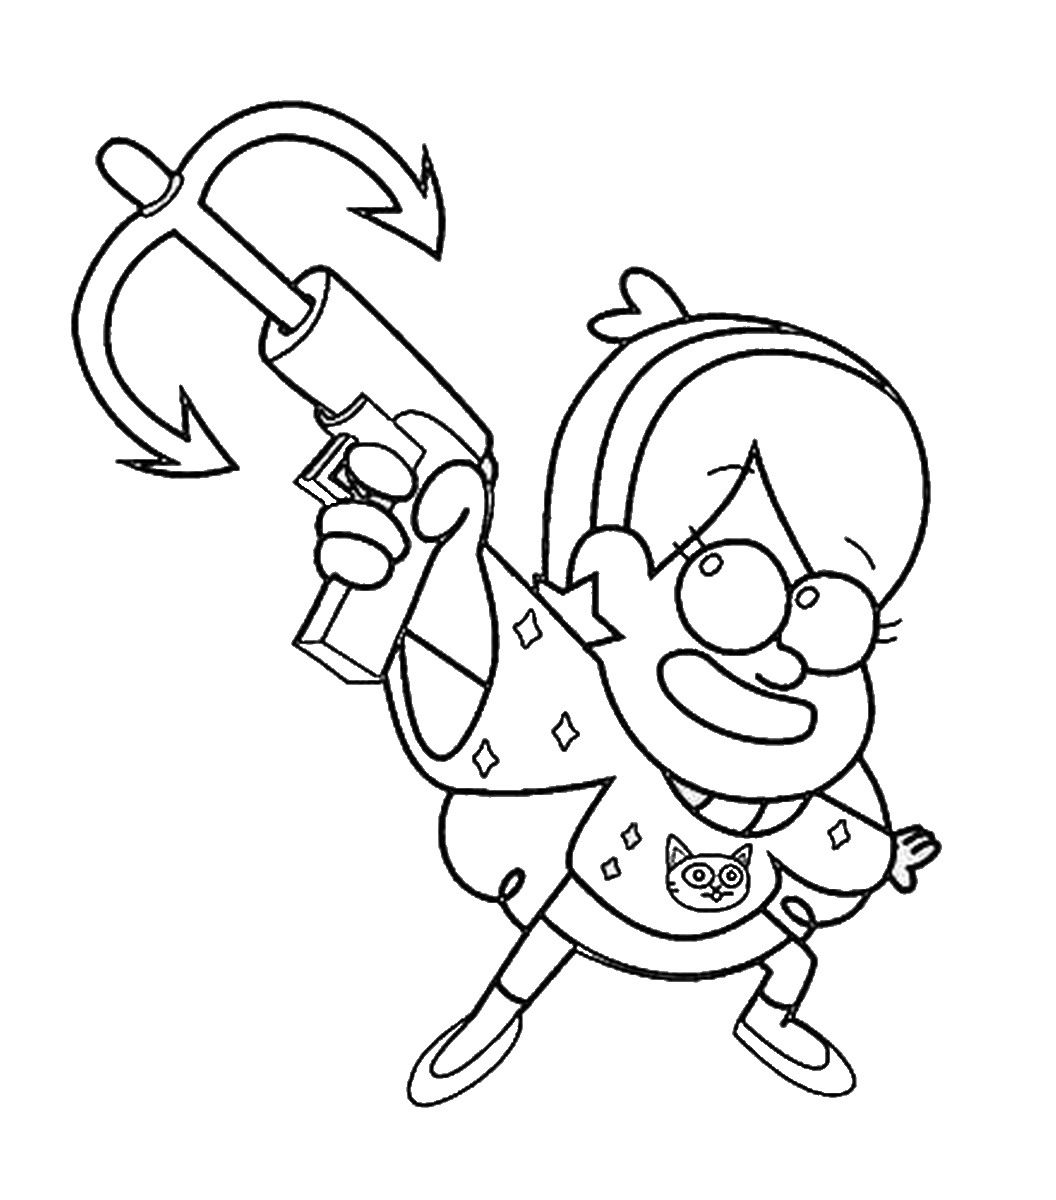 Printable coloring pages steven universe - Coloring Books